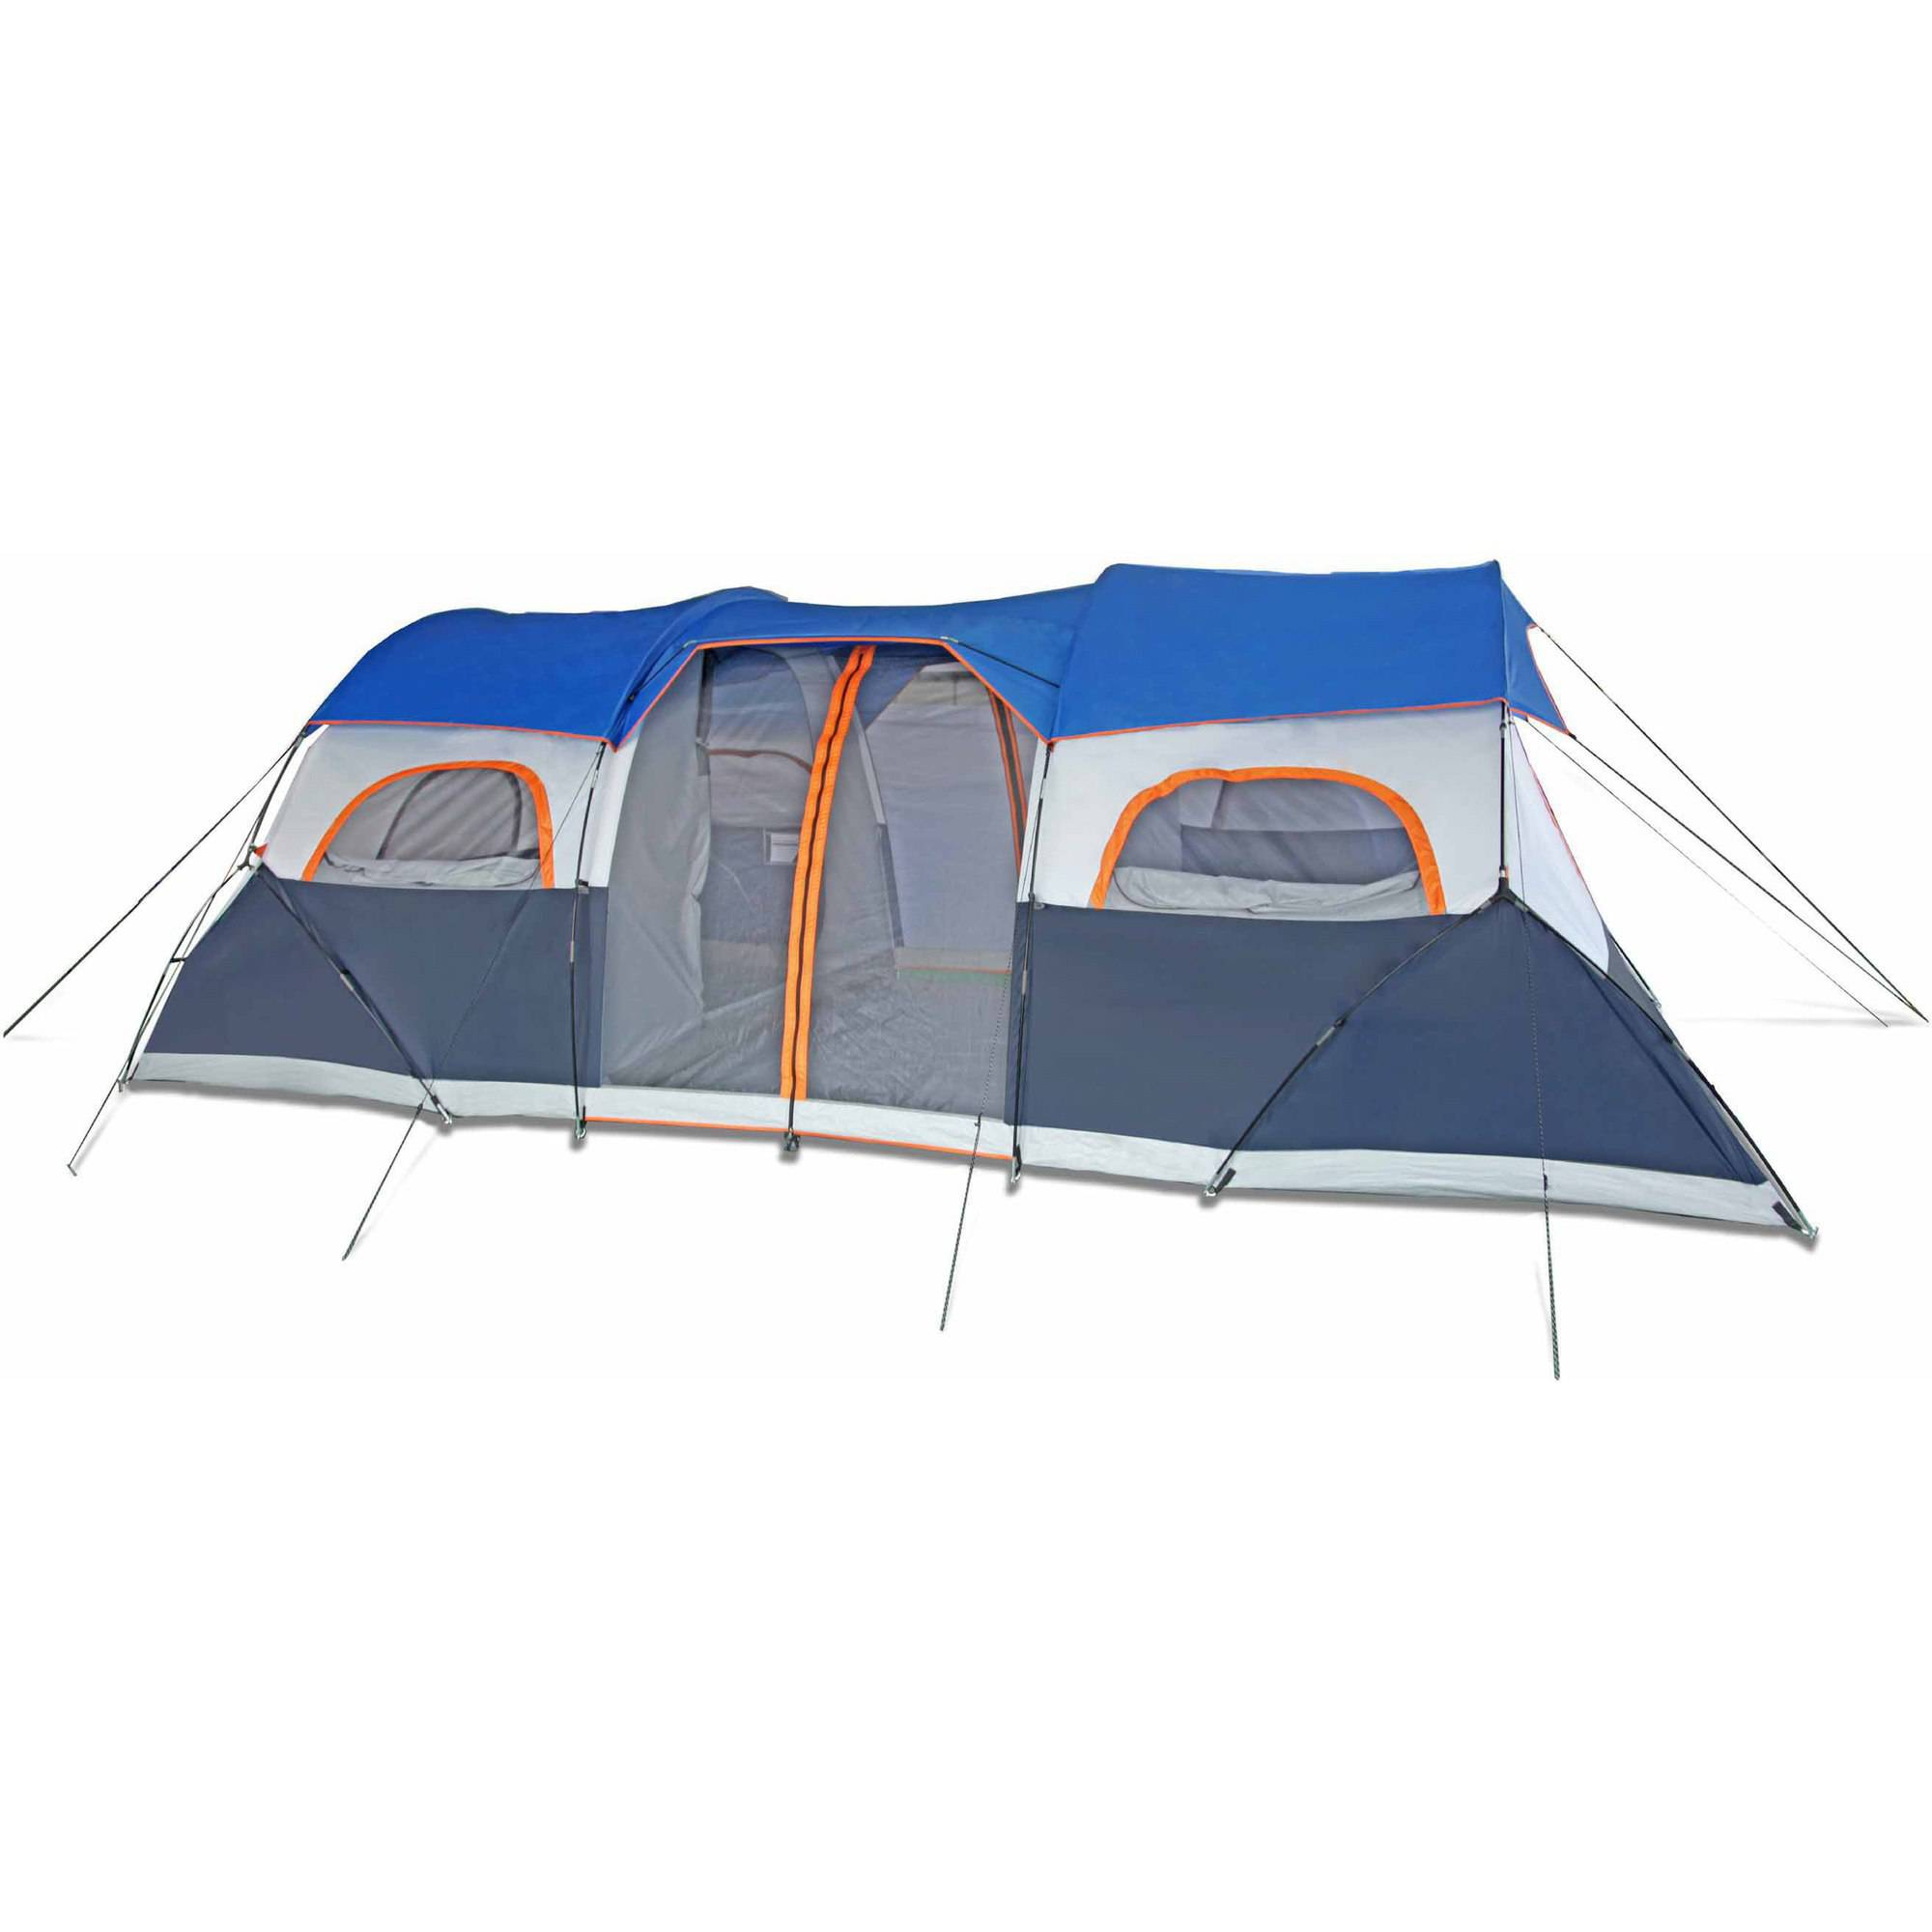 Ozark Trail 20u0027 x 10u0027 Tunnel Tent with Screen Porch Sleeps 10  sc 1 st  Walmart & Ozark Trail 20u0027 x 10u0027 Tunnel Tent with Screen Porch Sleeps 10 ...